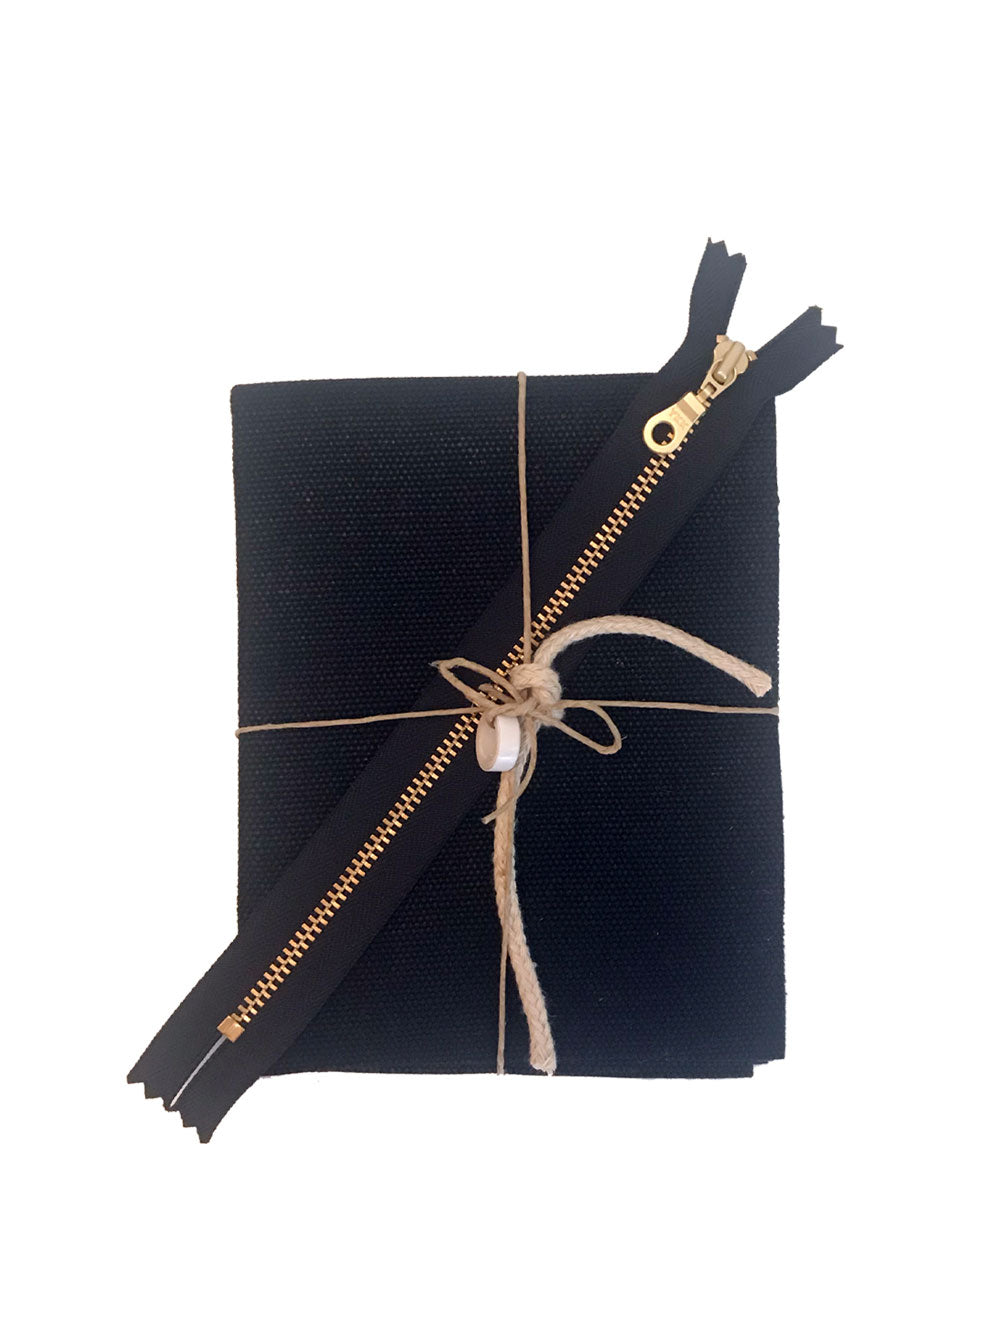 A small piece of folded black waxed canvas, a brass zipper, hemp rope, and role of leather tape, tied in a bow with twine.